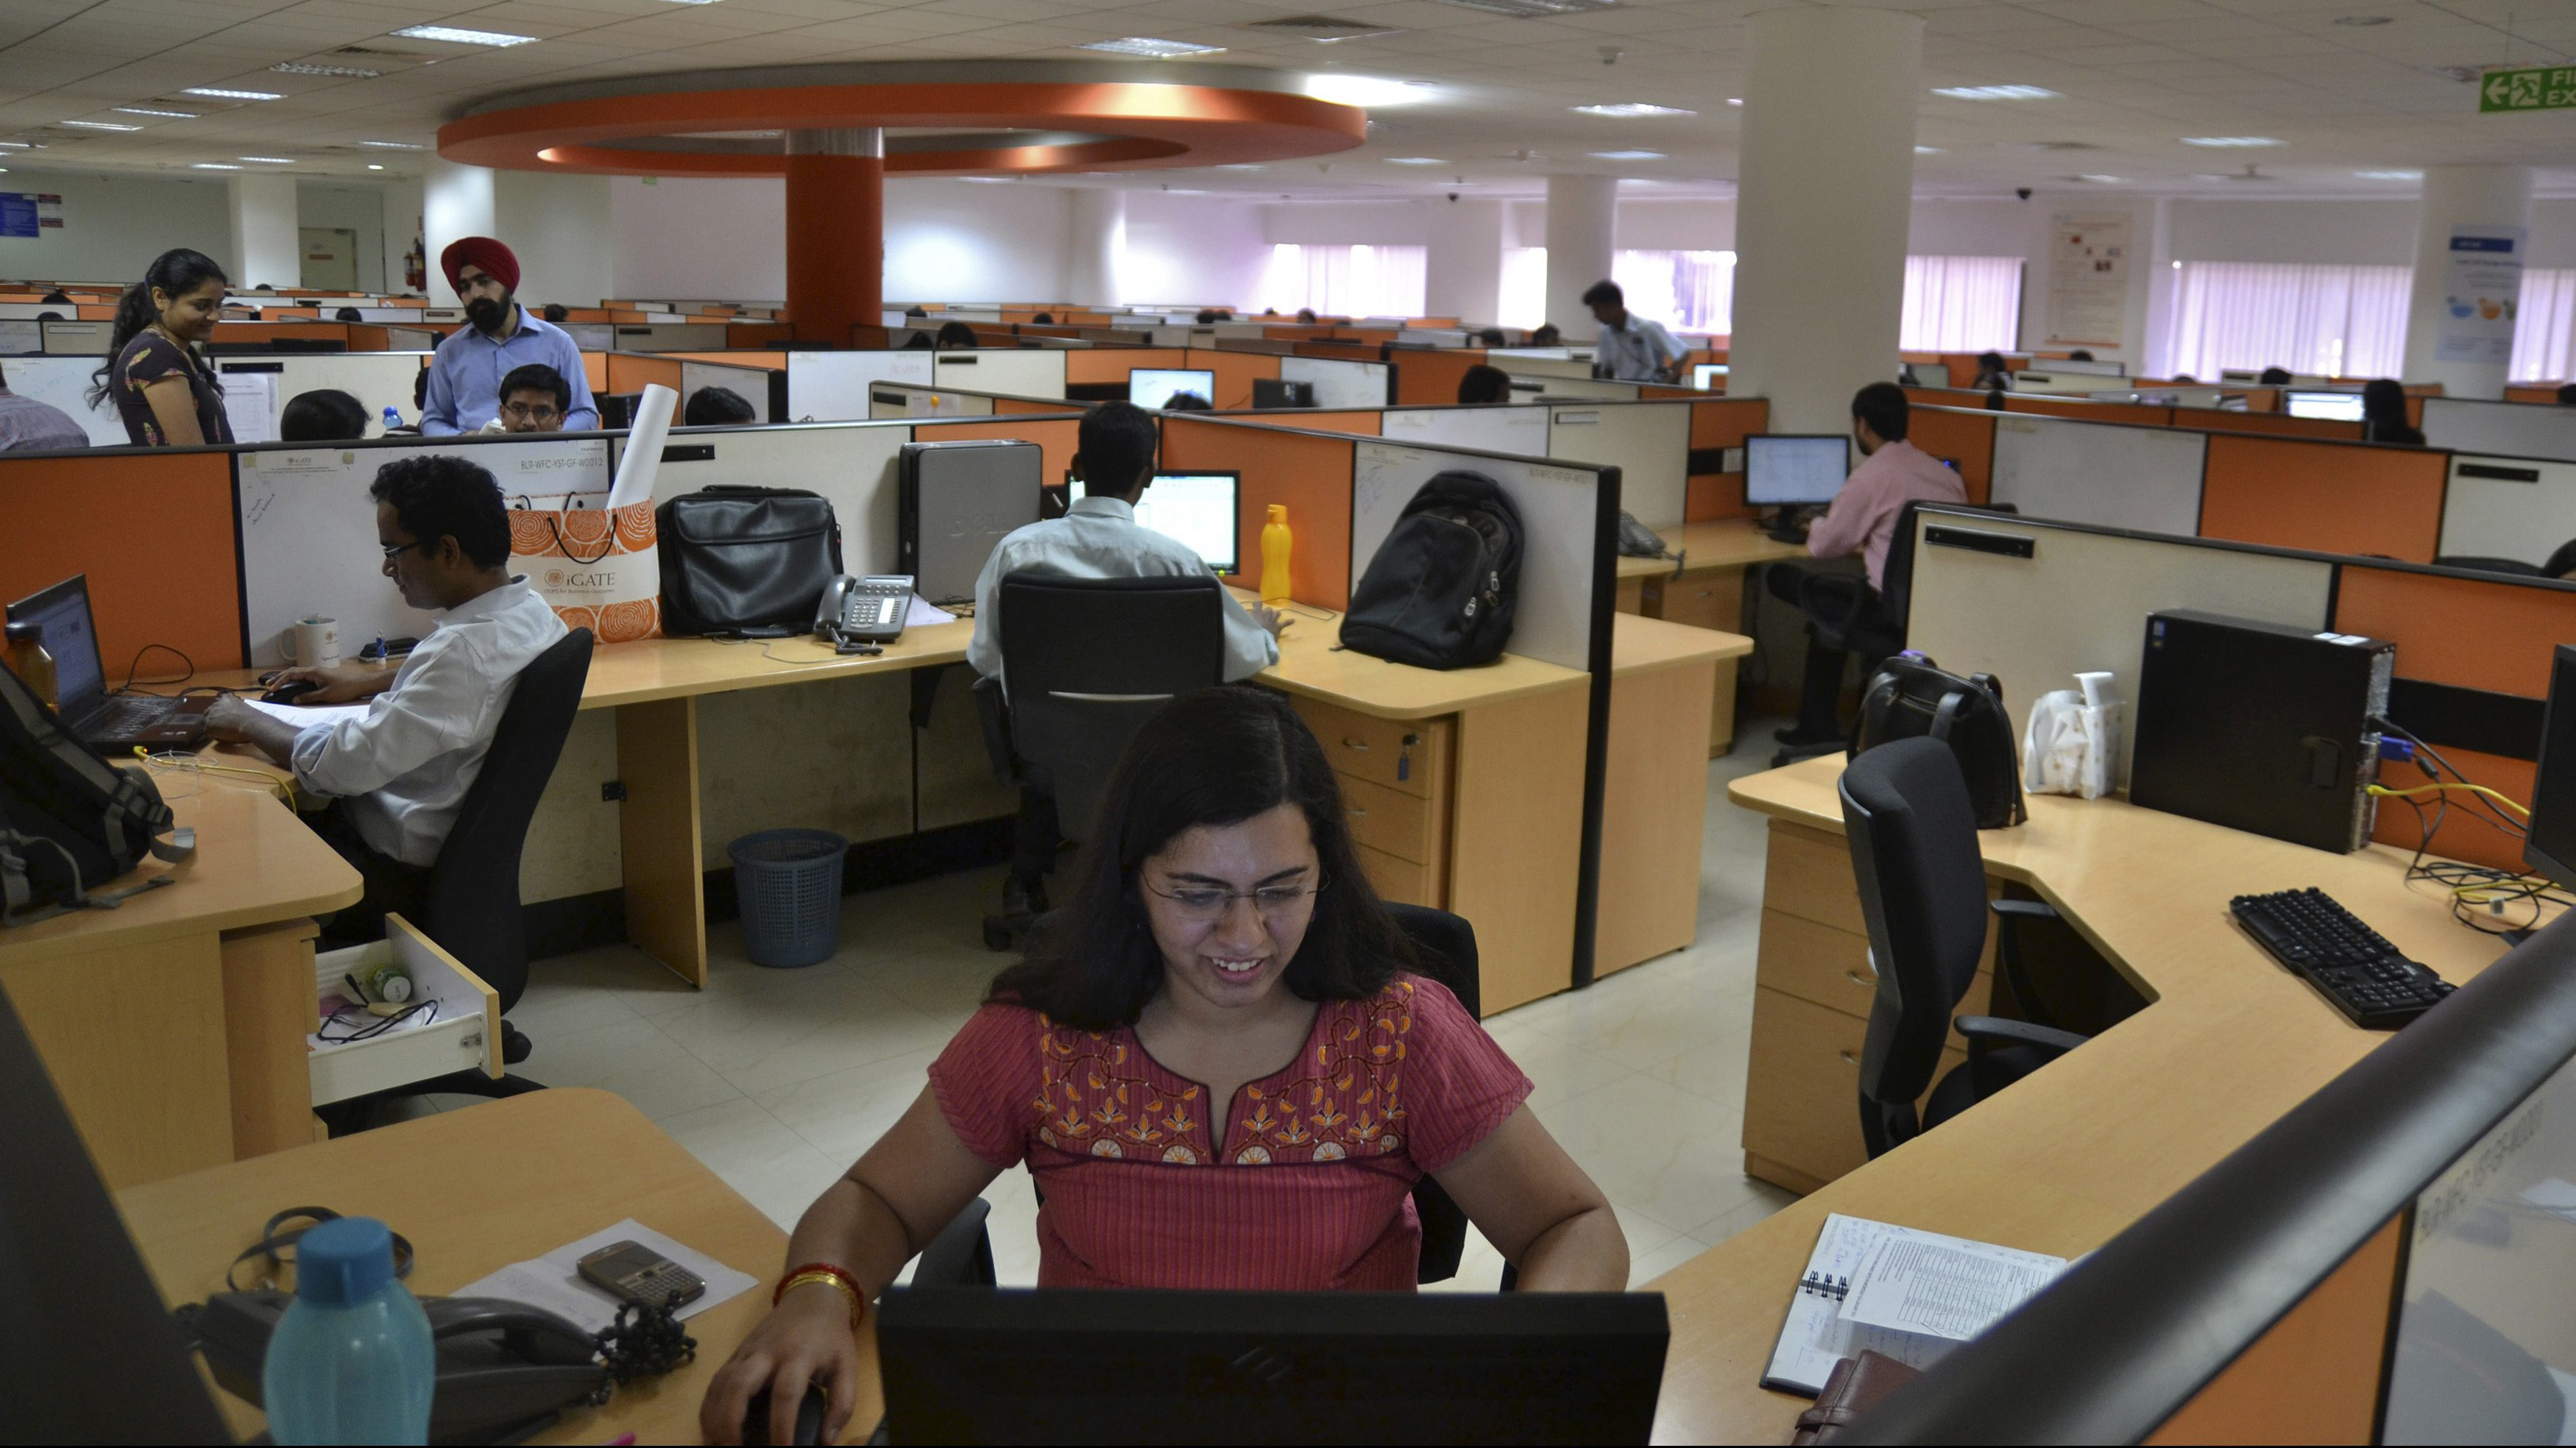 Employees work at the Indian headquarters of iGate in the southern Indian city of Bangalore February 4, 2013. A former Infosys Ltd executive is challenging the IT outsourcing industry's billing model by charging for results instead of basing fees on the time and labour put in by the armies of staff working for India's big firms. Picture taken February 4, 2013. REUTERS/Stringer (INDIA - Tags: BUSINESS SCIENCE TECHNOLOGY) - GM1E92M0E4K01